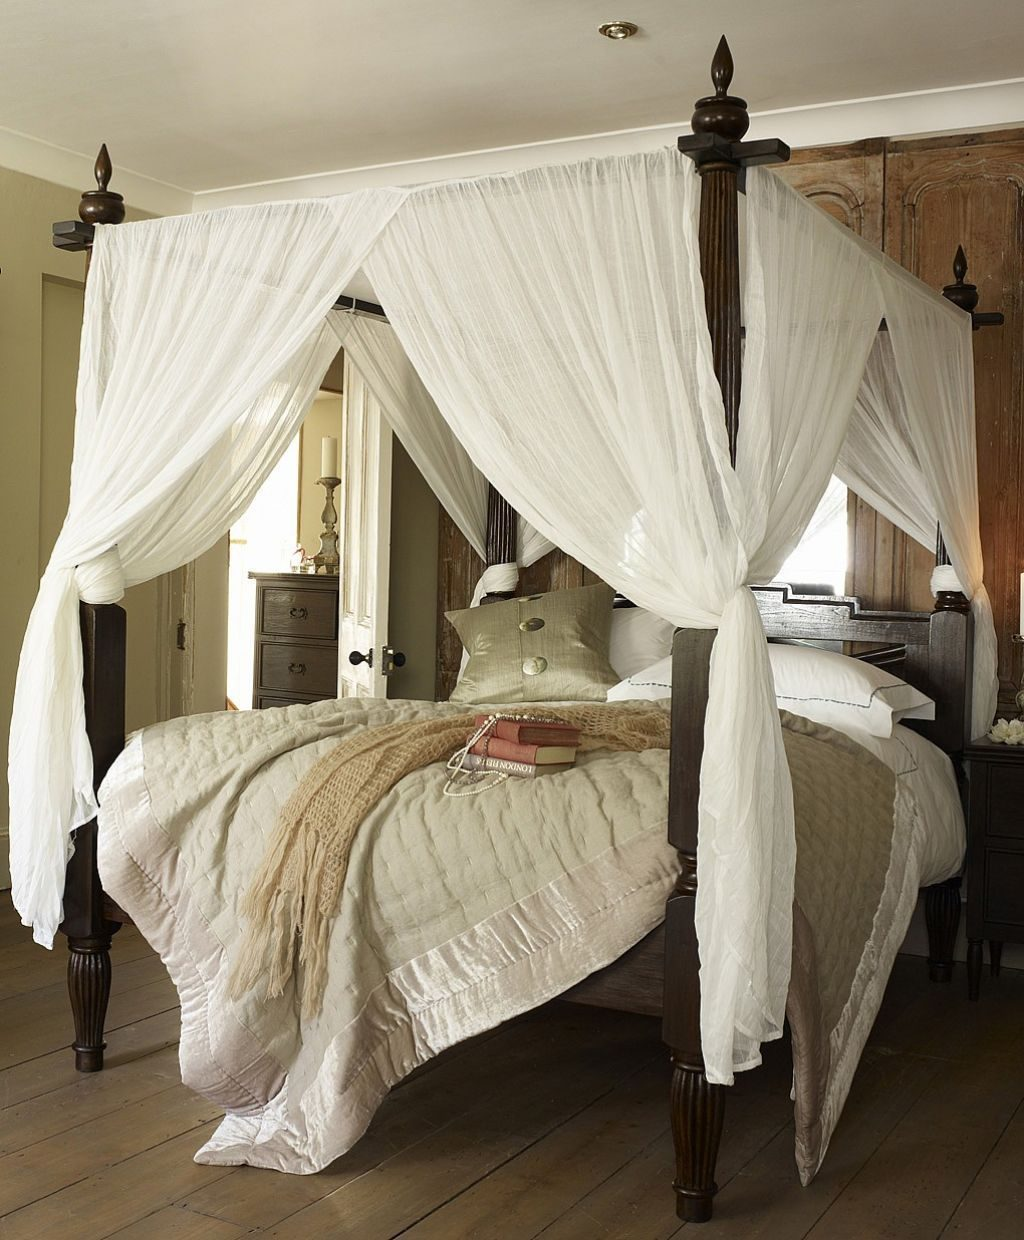 Wooden Canopy Bed With White Curtains In 2019 Decor Canopy Bed